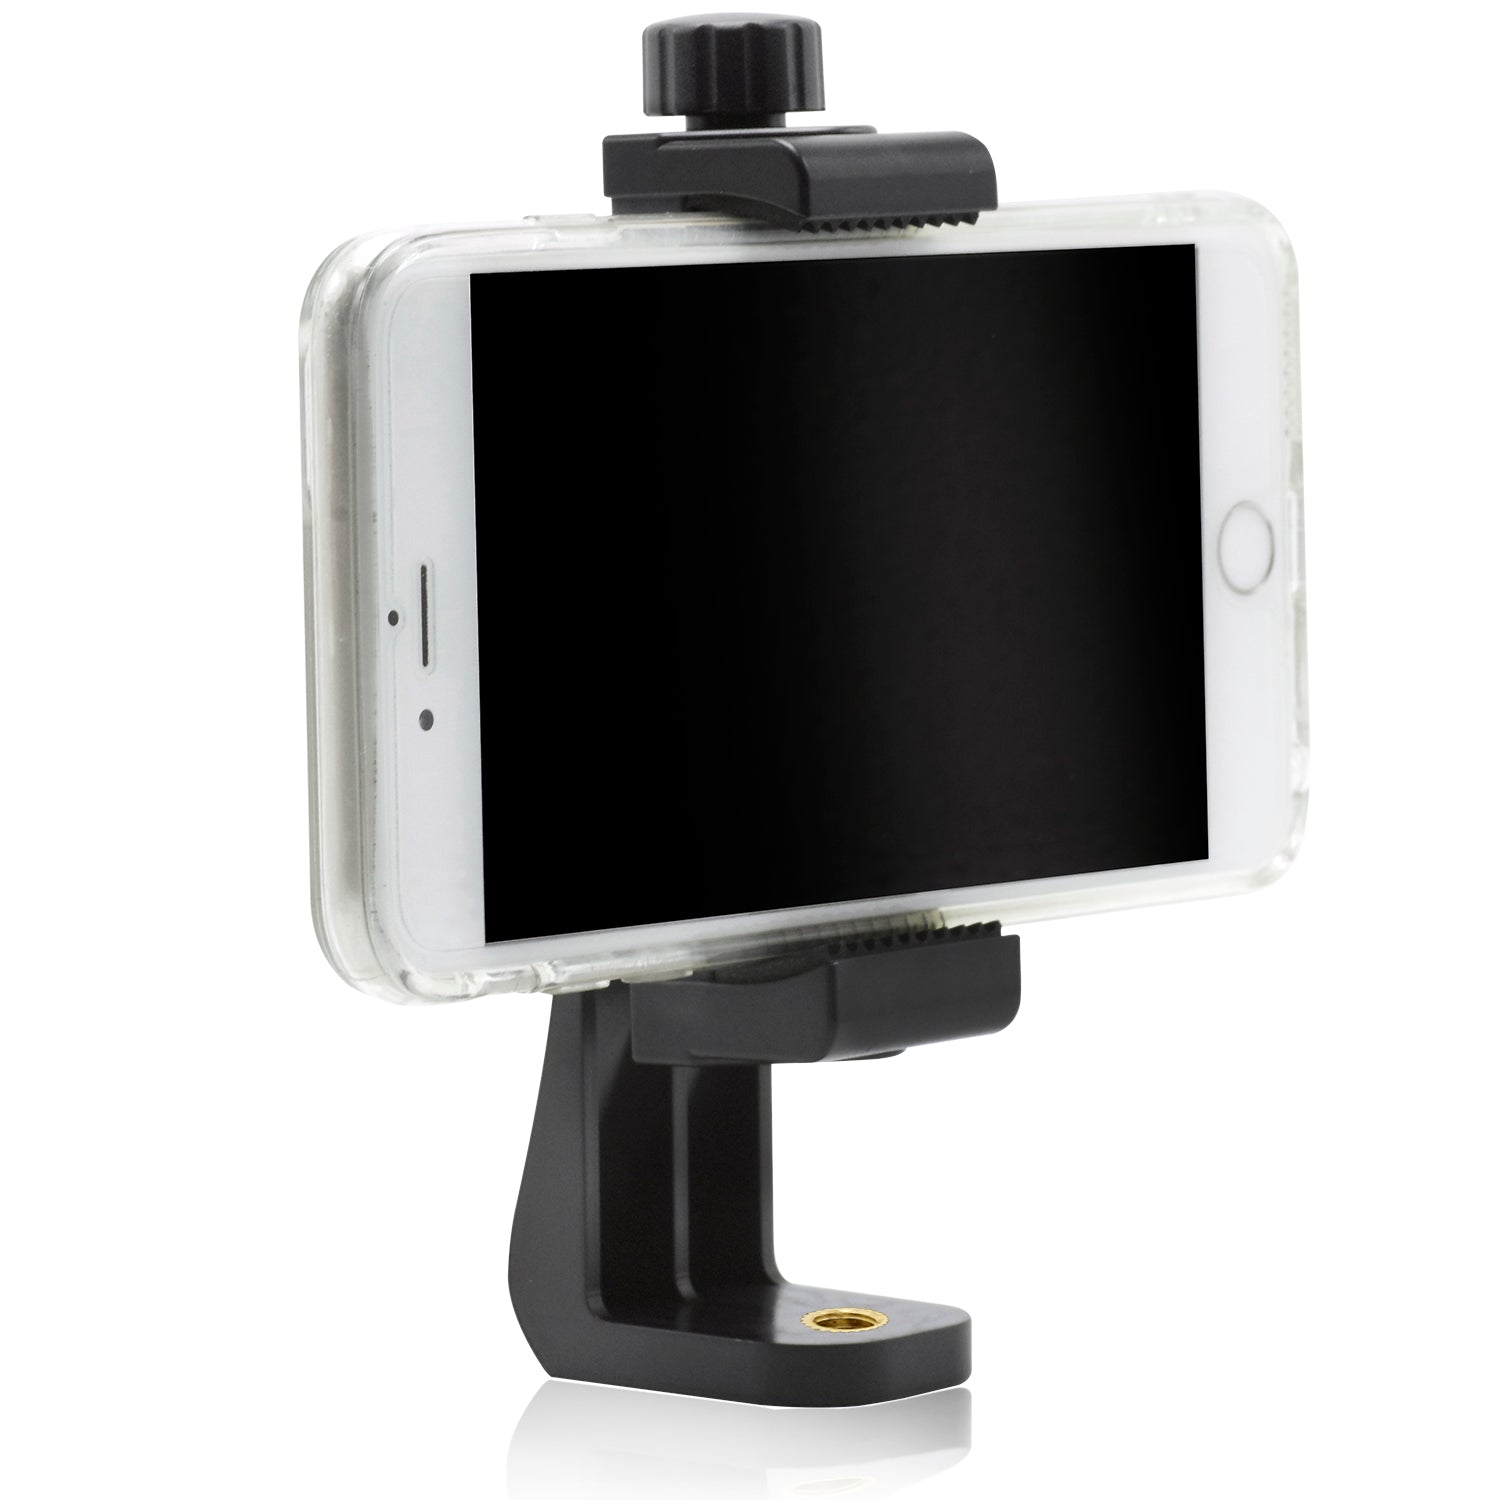 Loadstone Studio, Universal Smartphone Tripod Mount Adapter, Fits iPhone, Samsung, and most Phones, Rotates Vertically and Horizontally, Adjustable Width Soft Clamp, WMLS4527